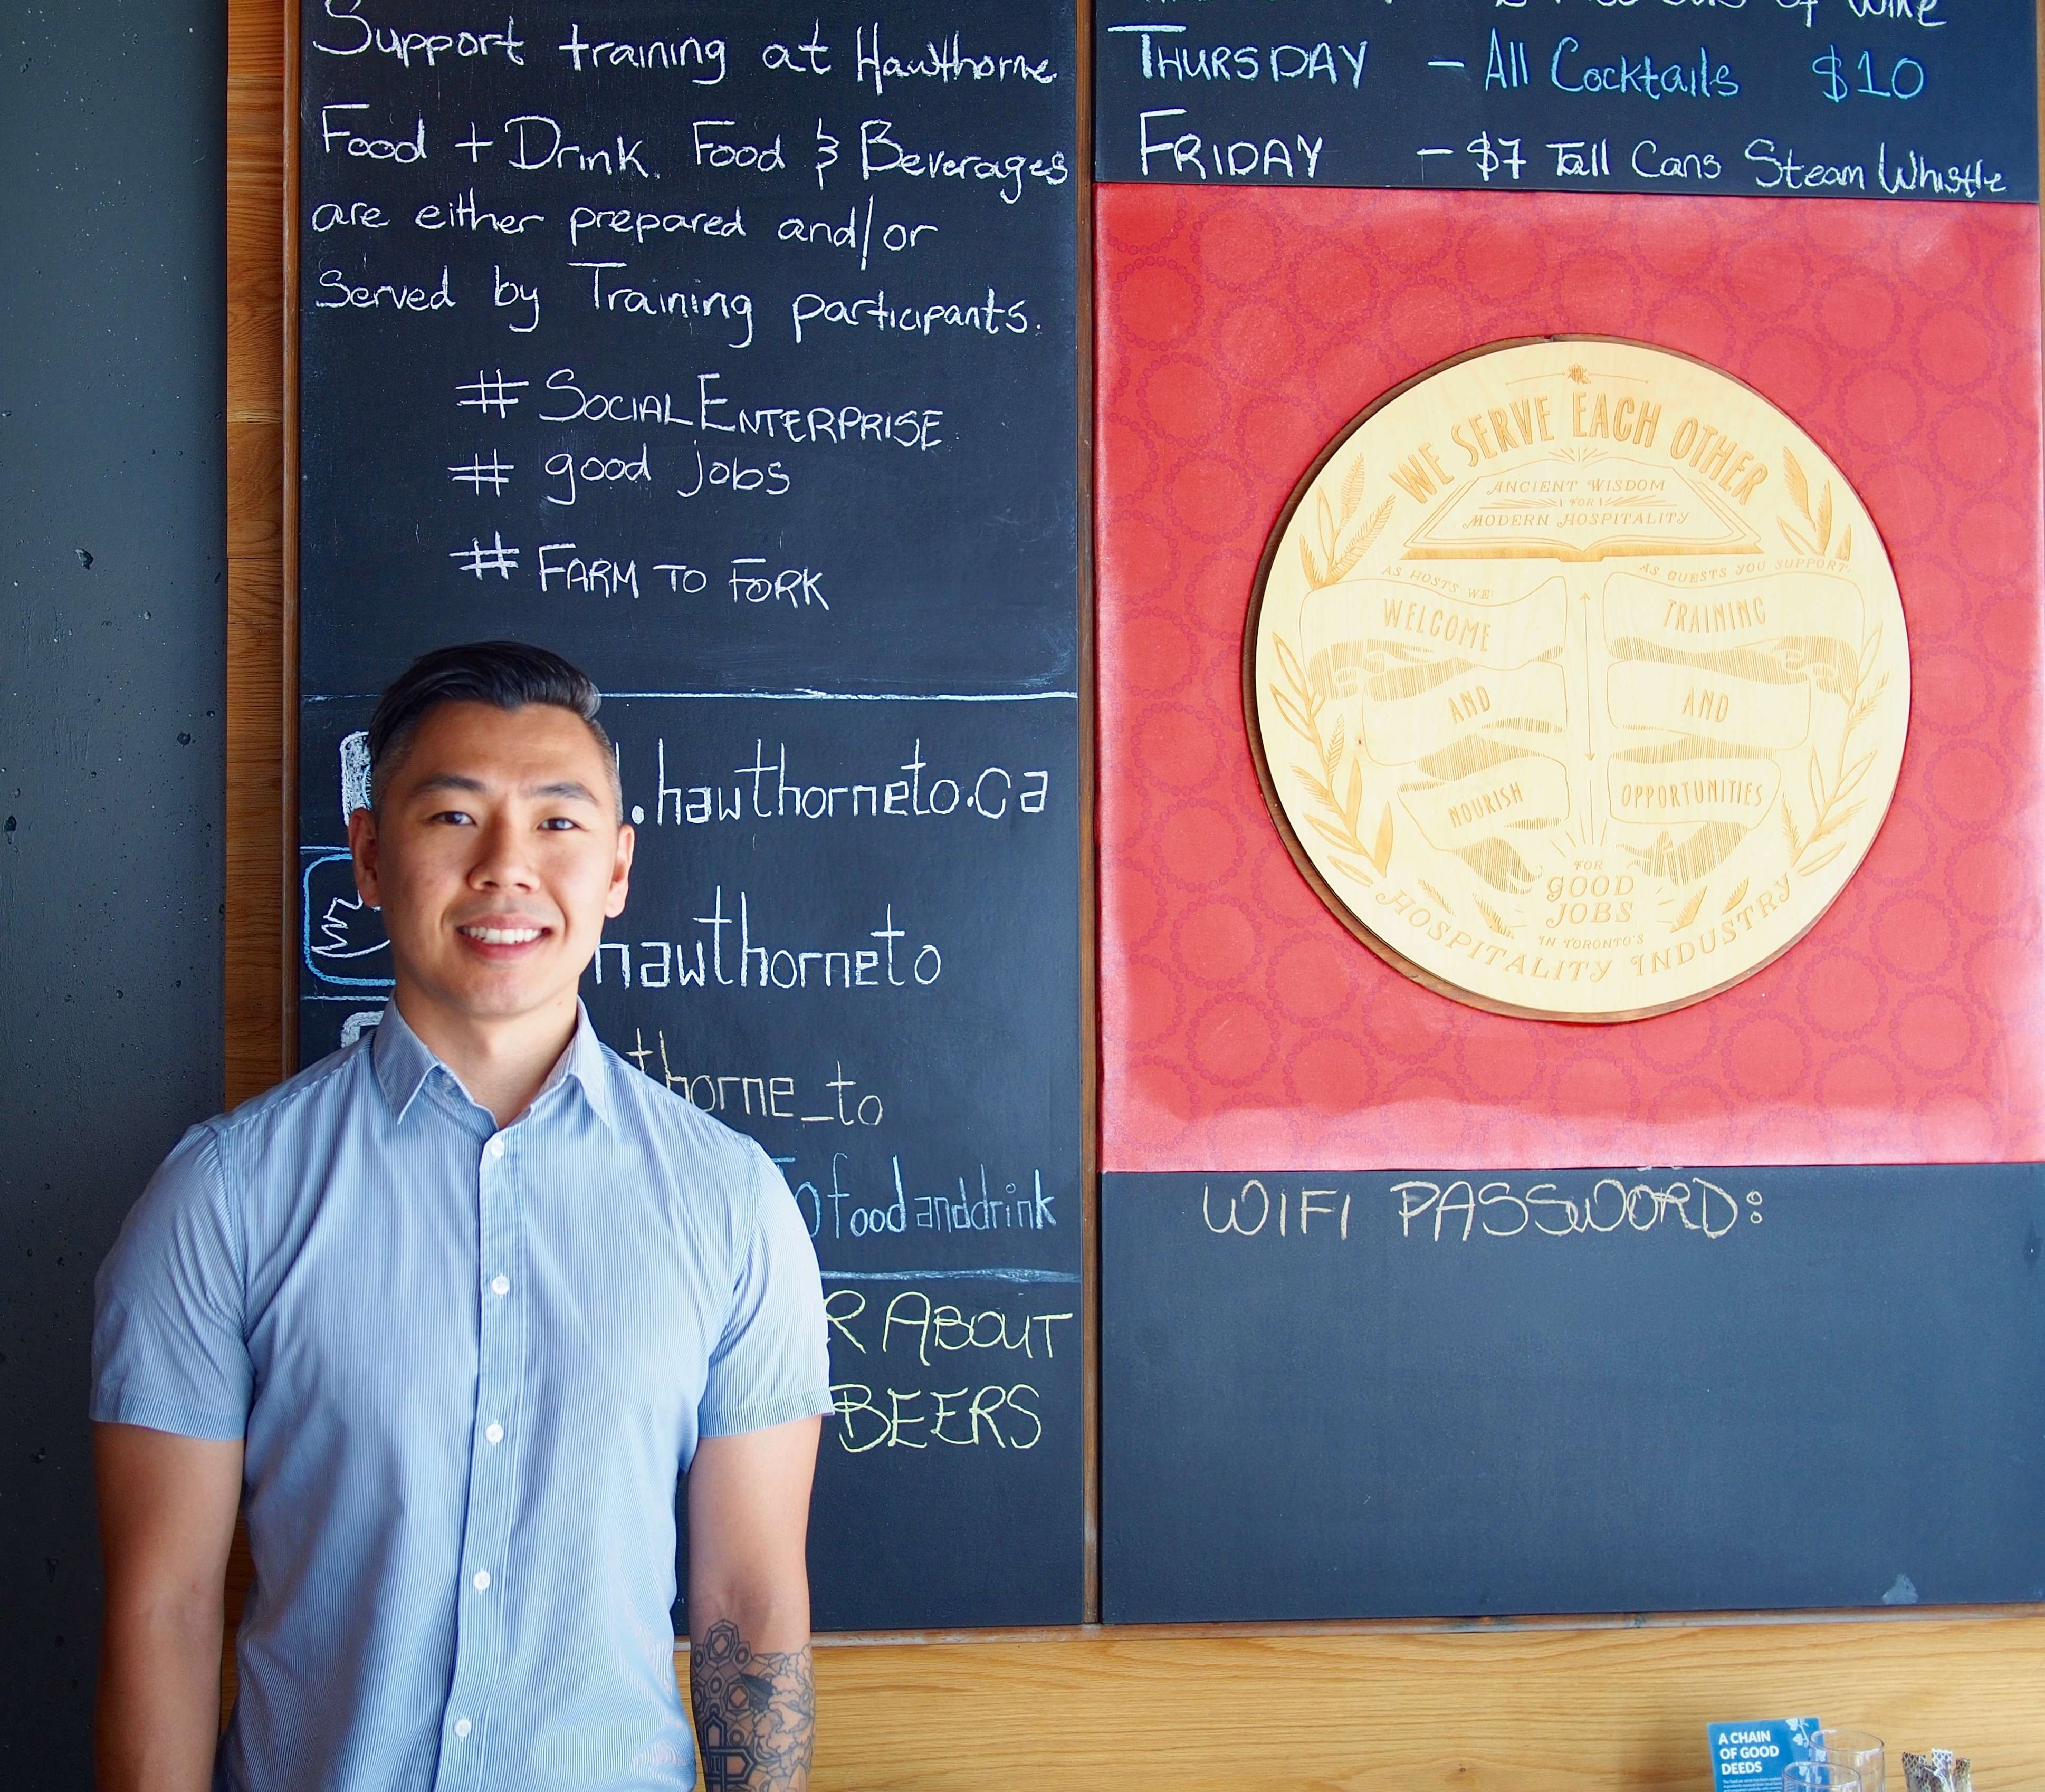 Photo of Ken Tang from Hospitality Workers Training Centre